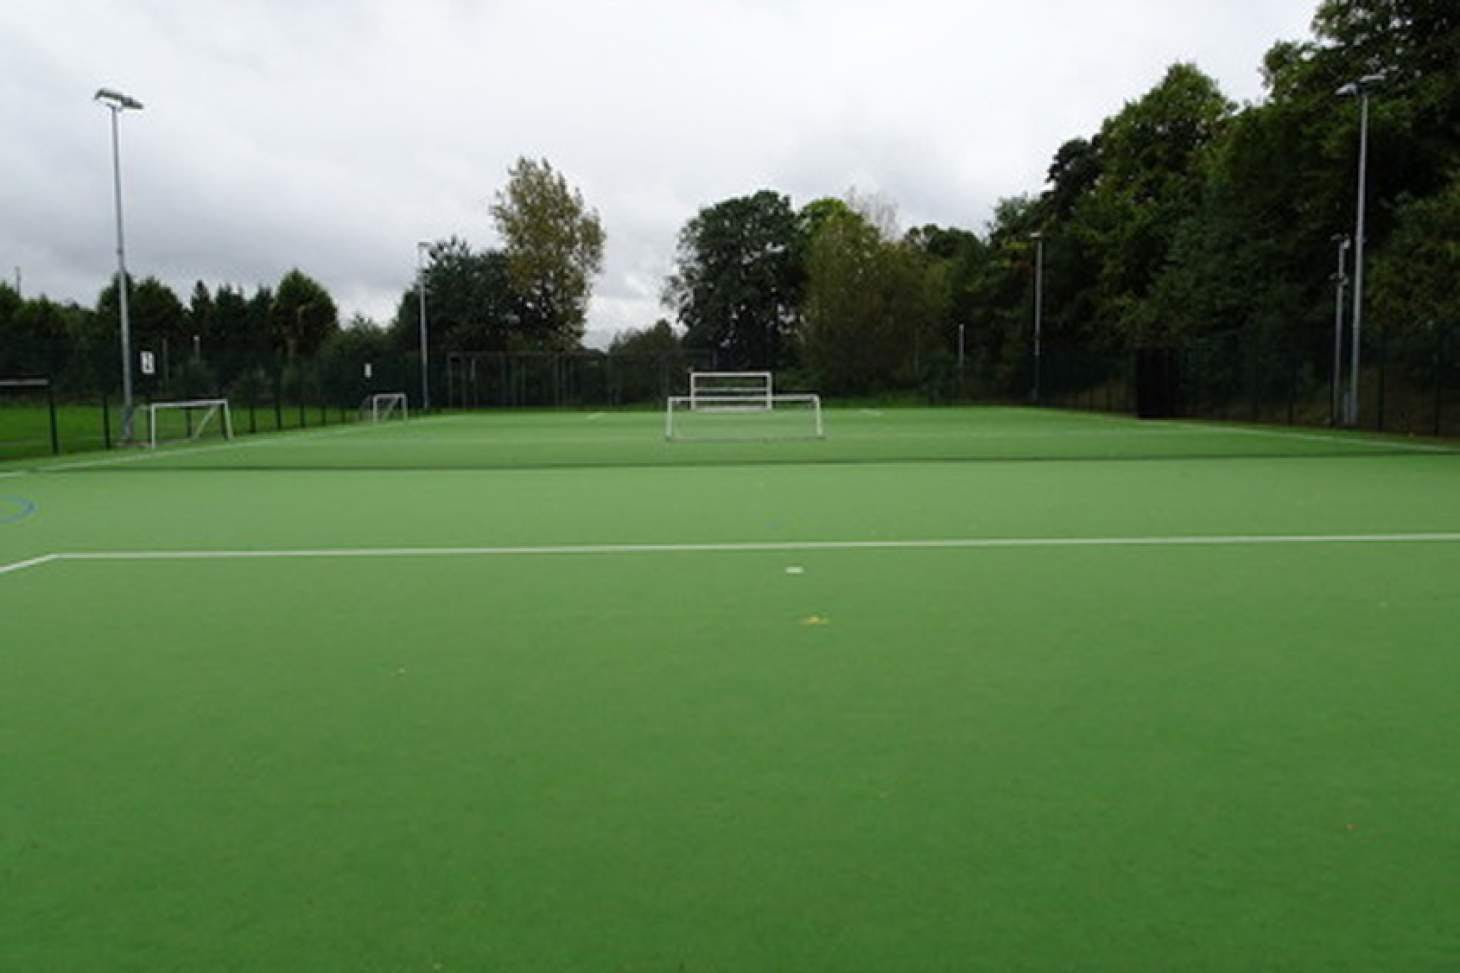 The Barlow RC High School 5 a side | Astroturf football pitch